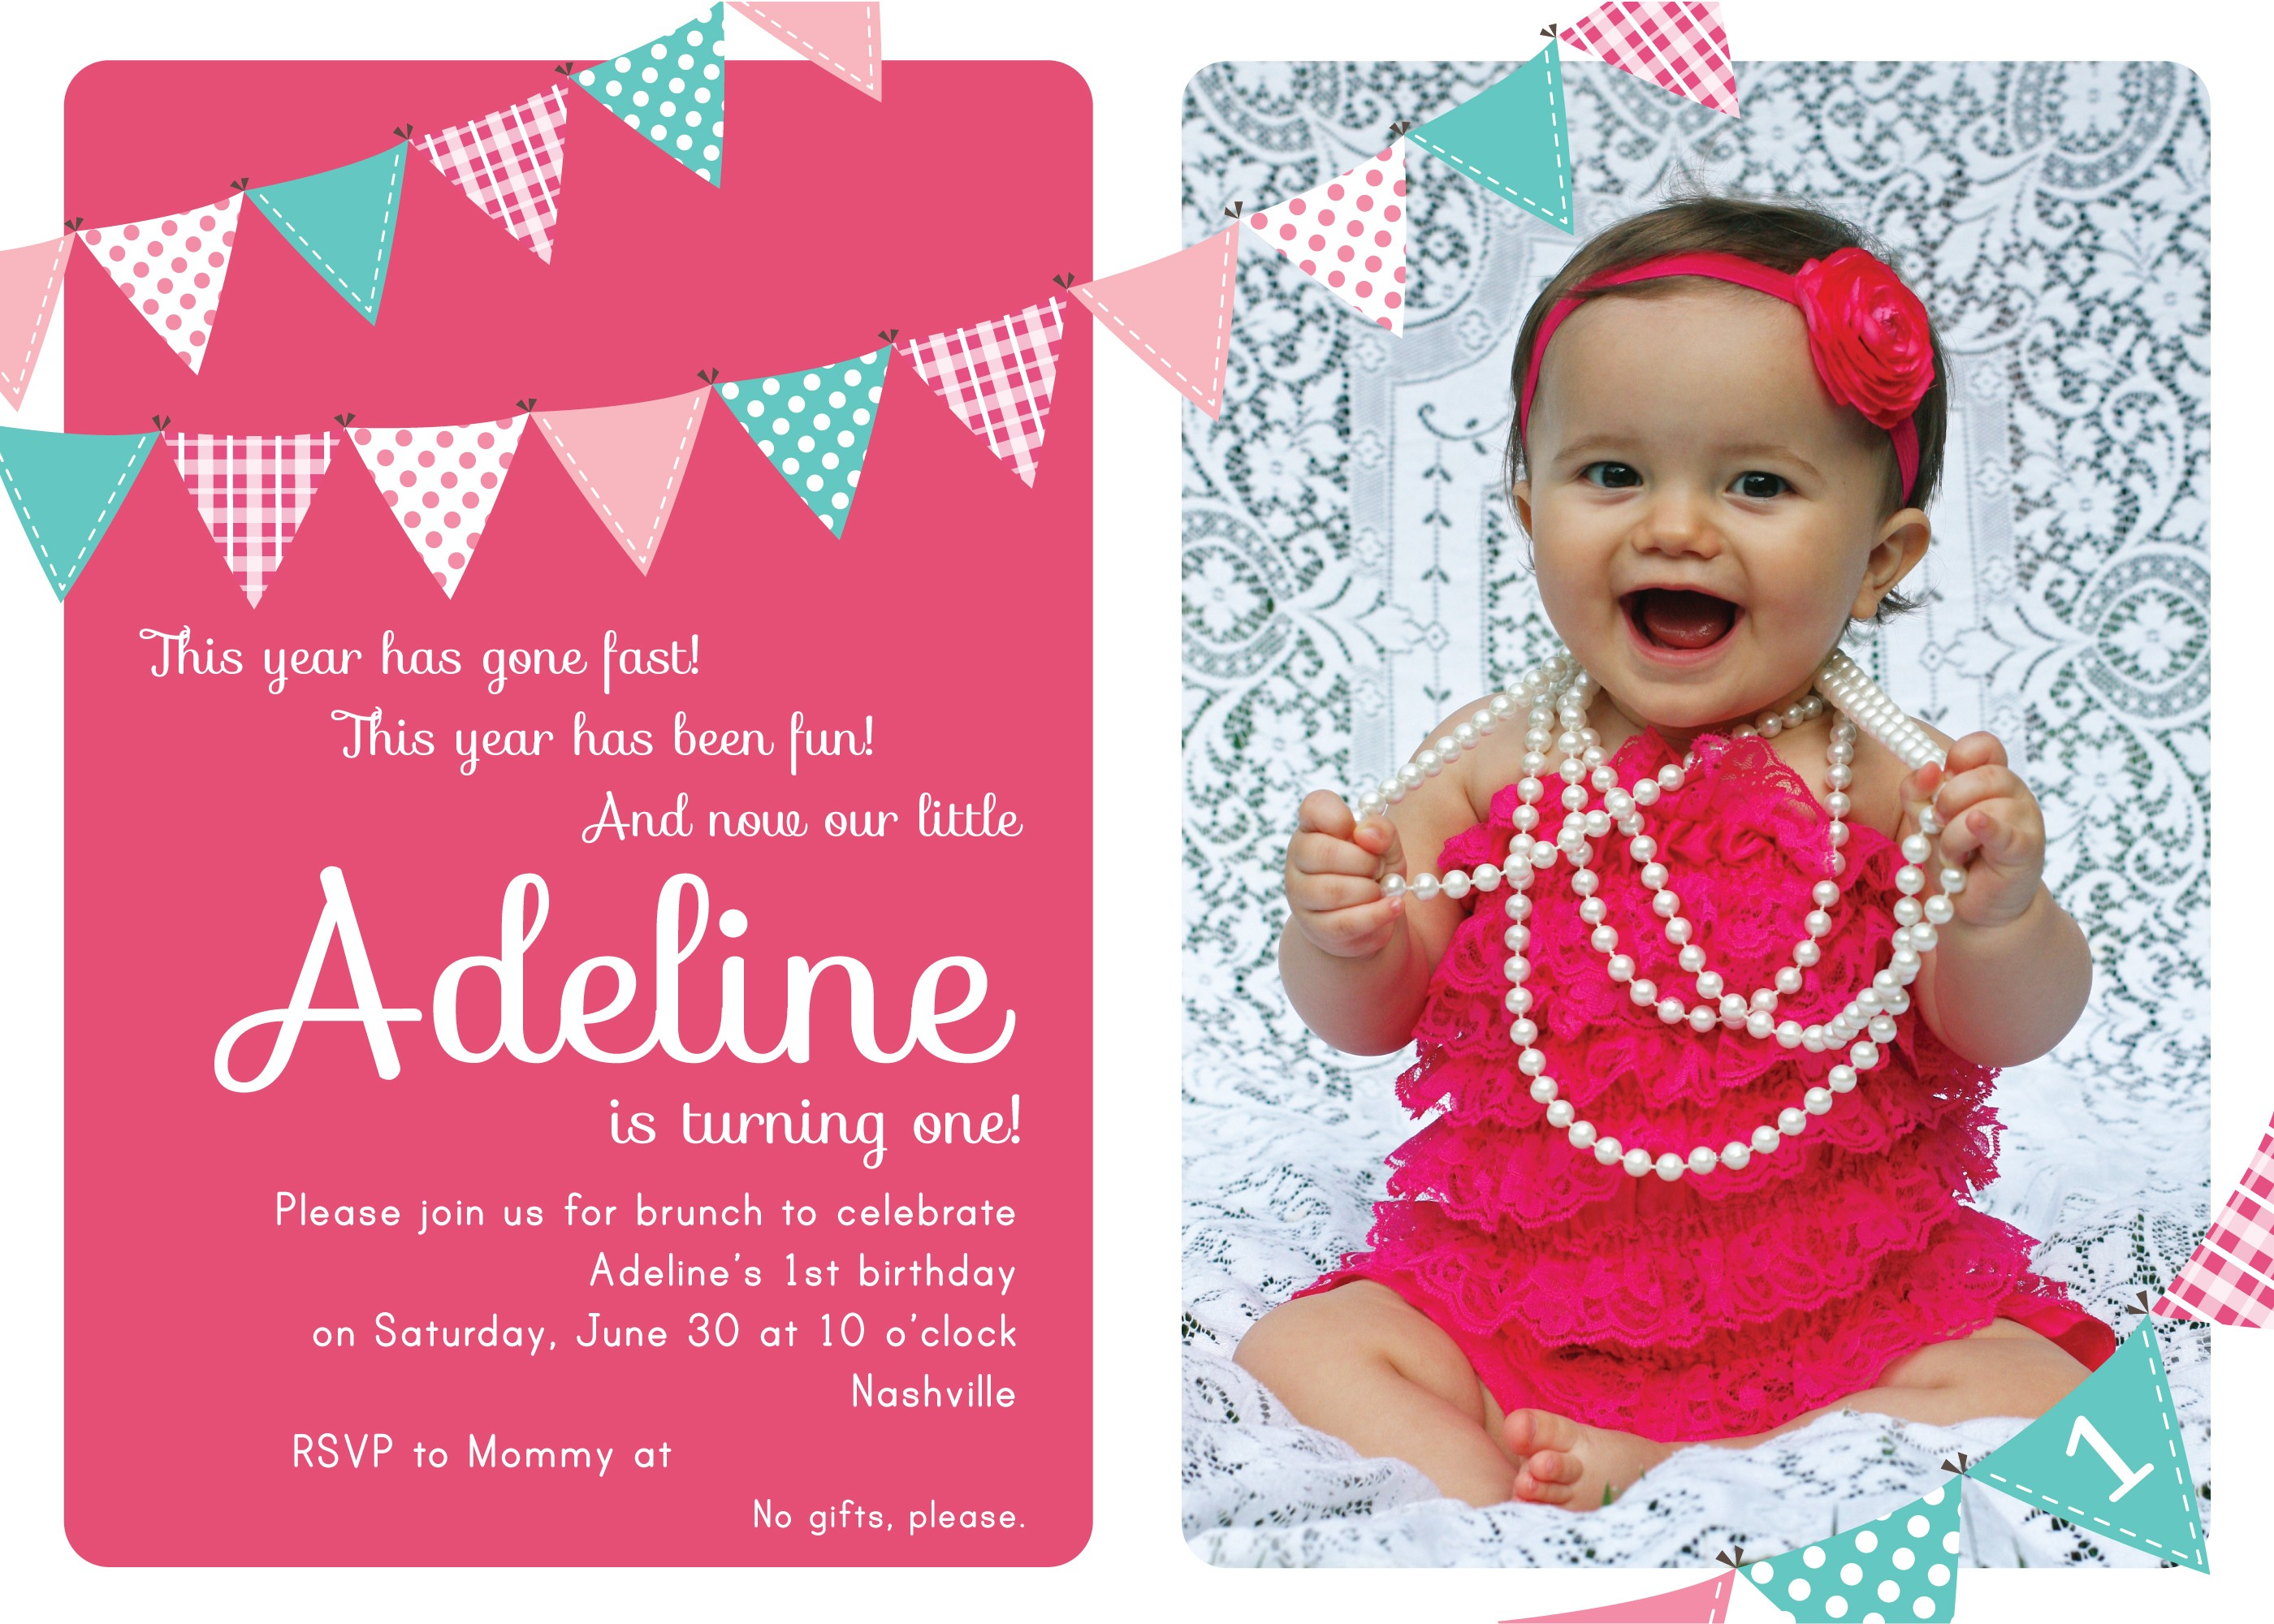 one year old birthday invitation templates ; invitation-templates-year-1-save-free-birthday-invitation-templates-for-1-year-old-awesome-birthday-of-invitation-templates-year-1